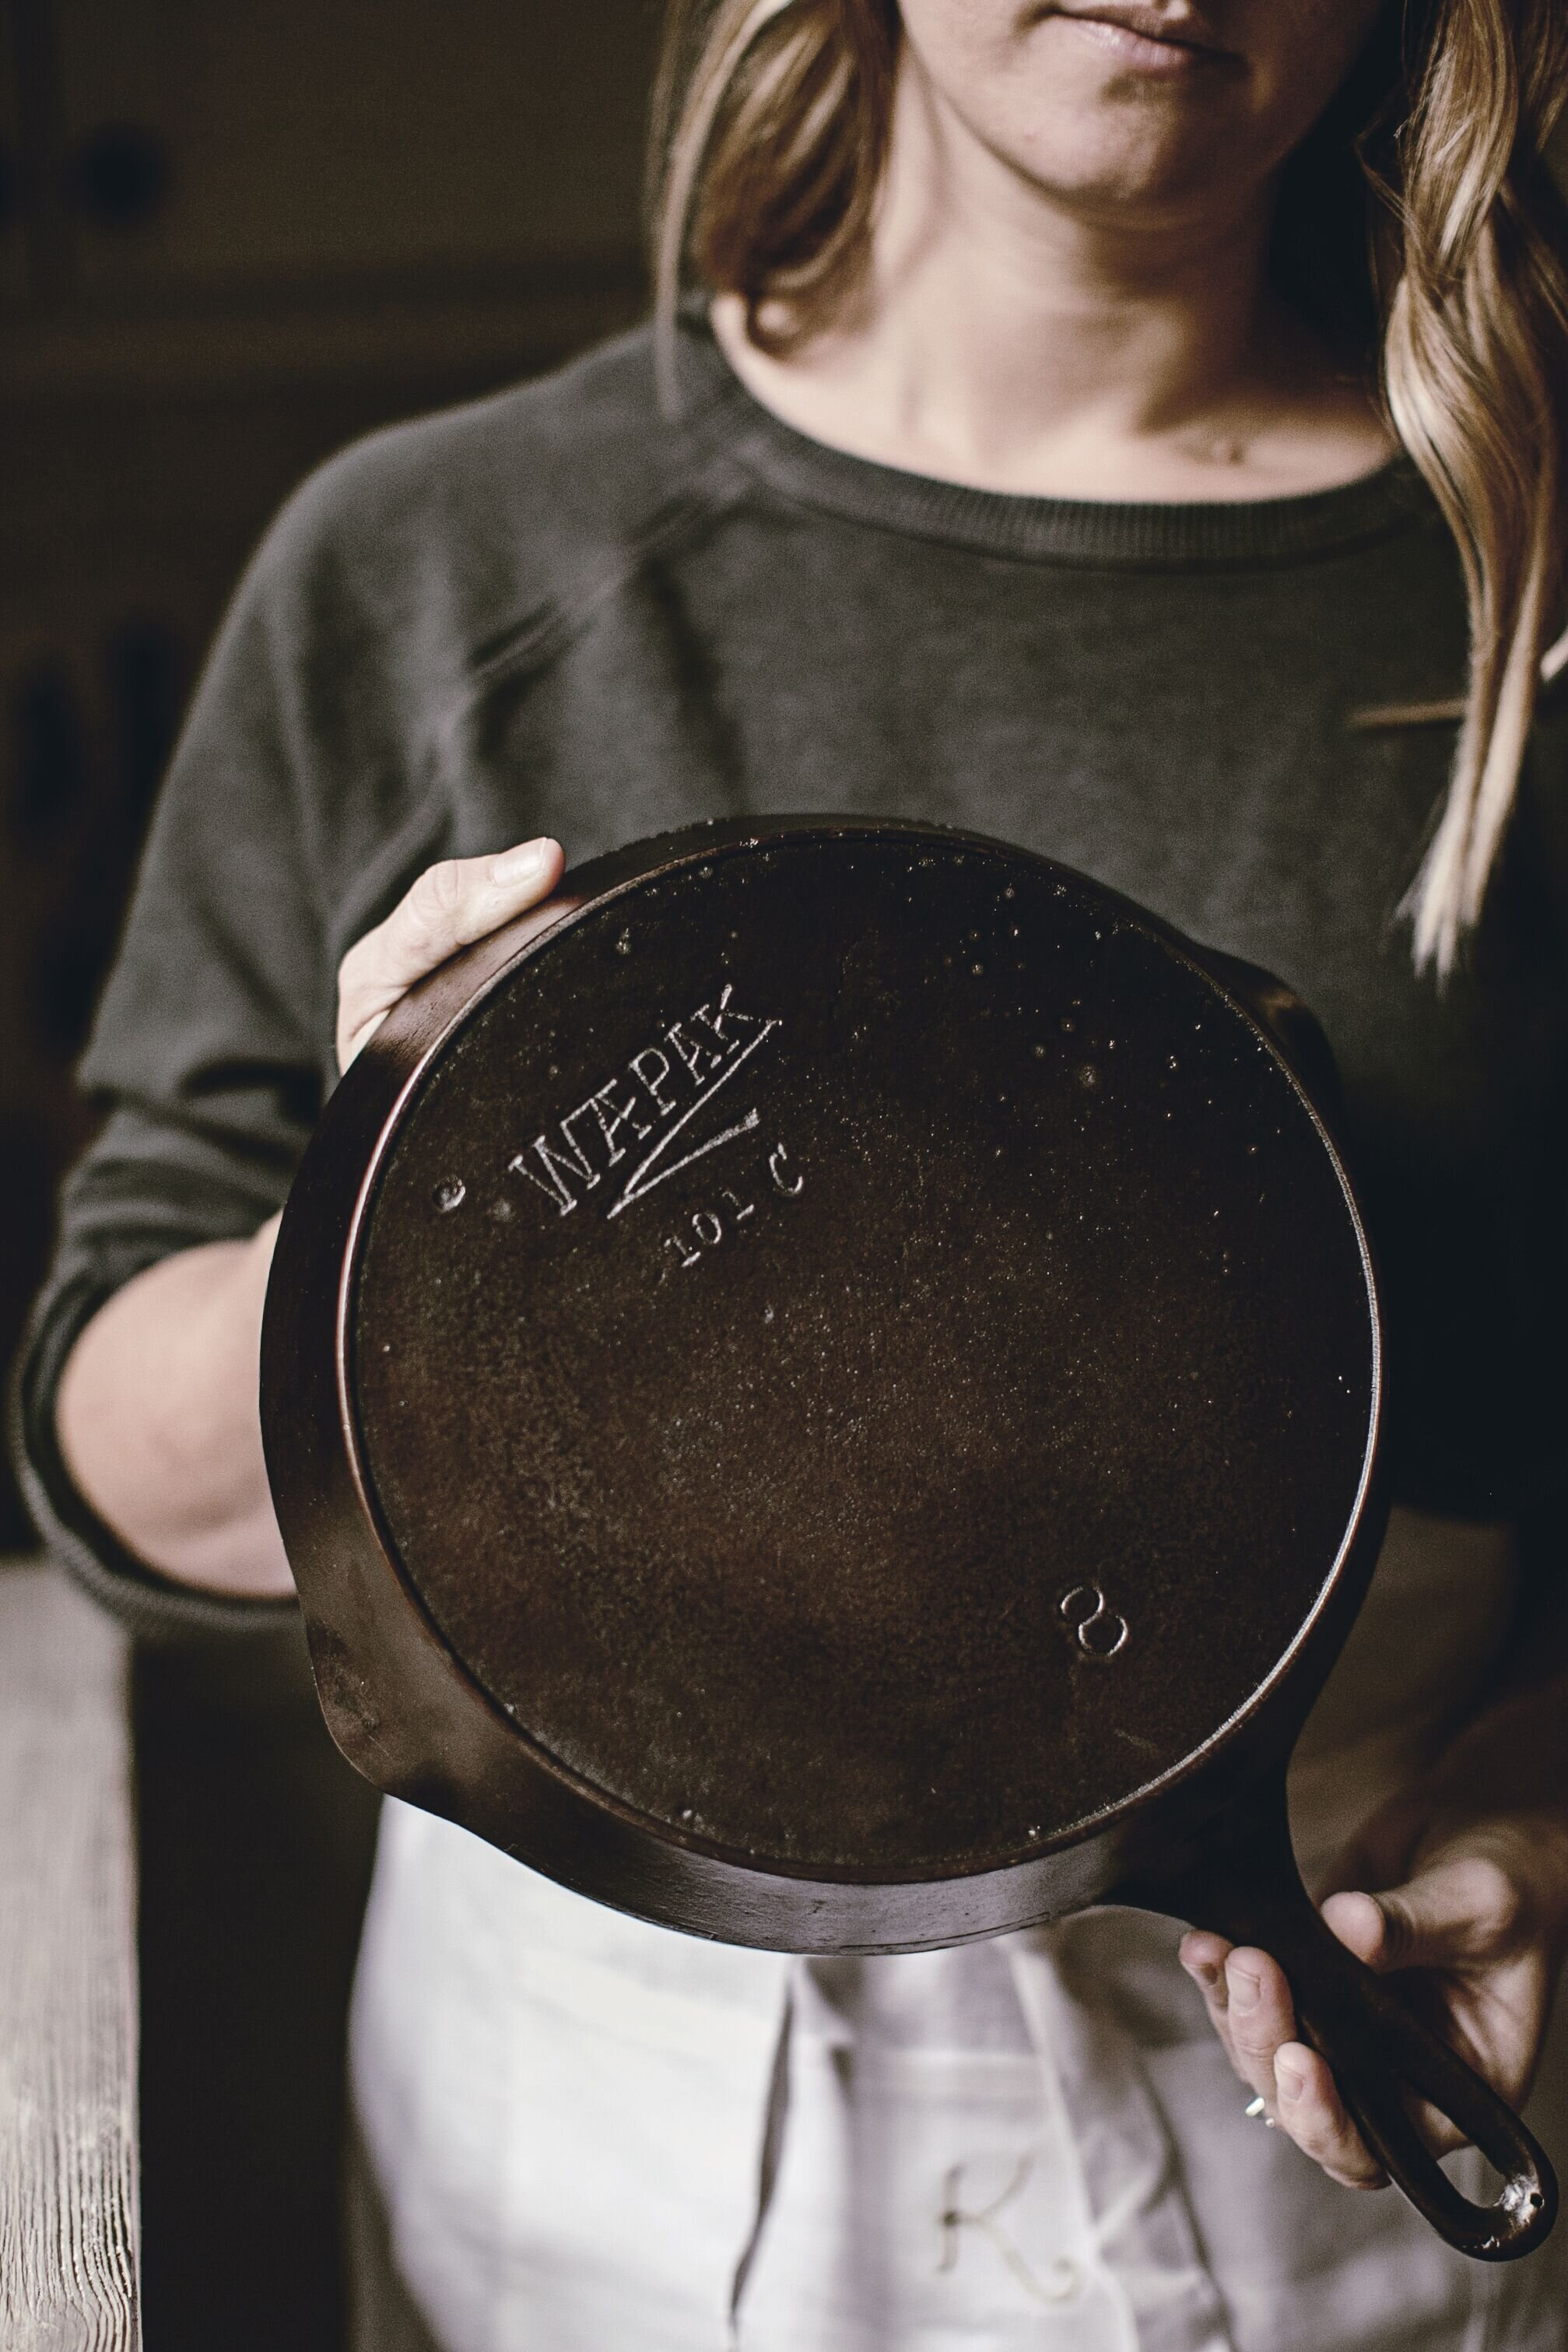 cast iron cooking by heirloomed